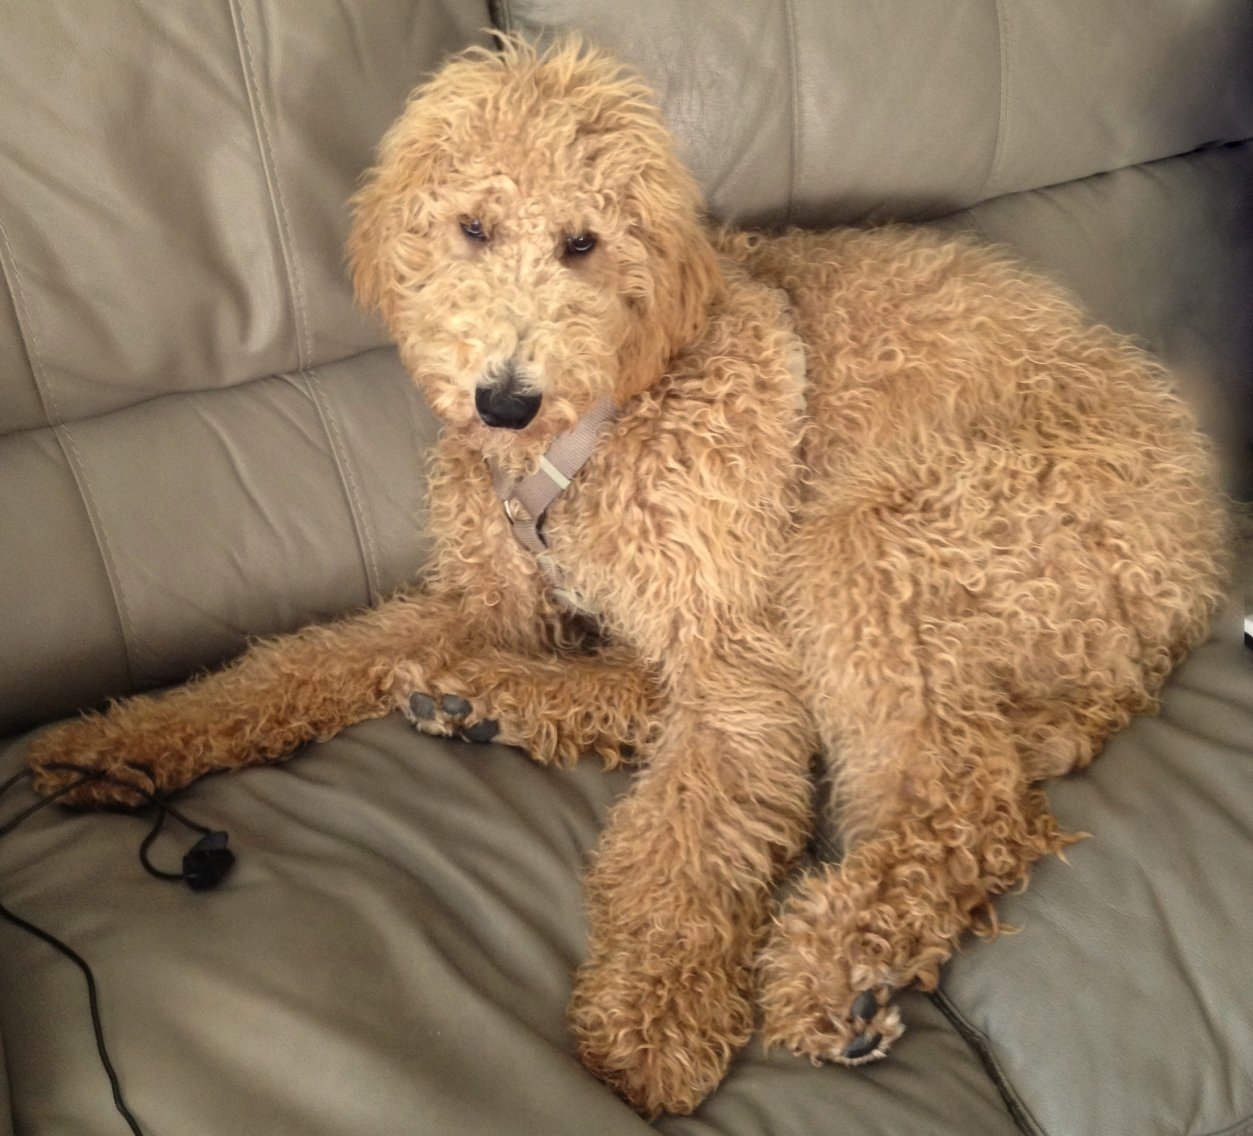 Labradoodle Sad Eyes Dog - DopePicz